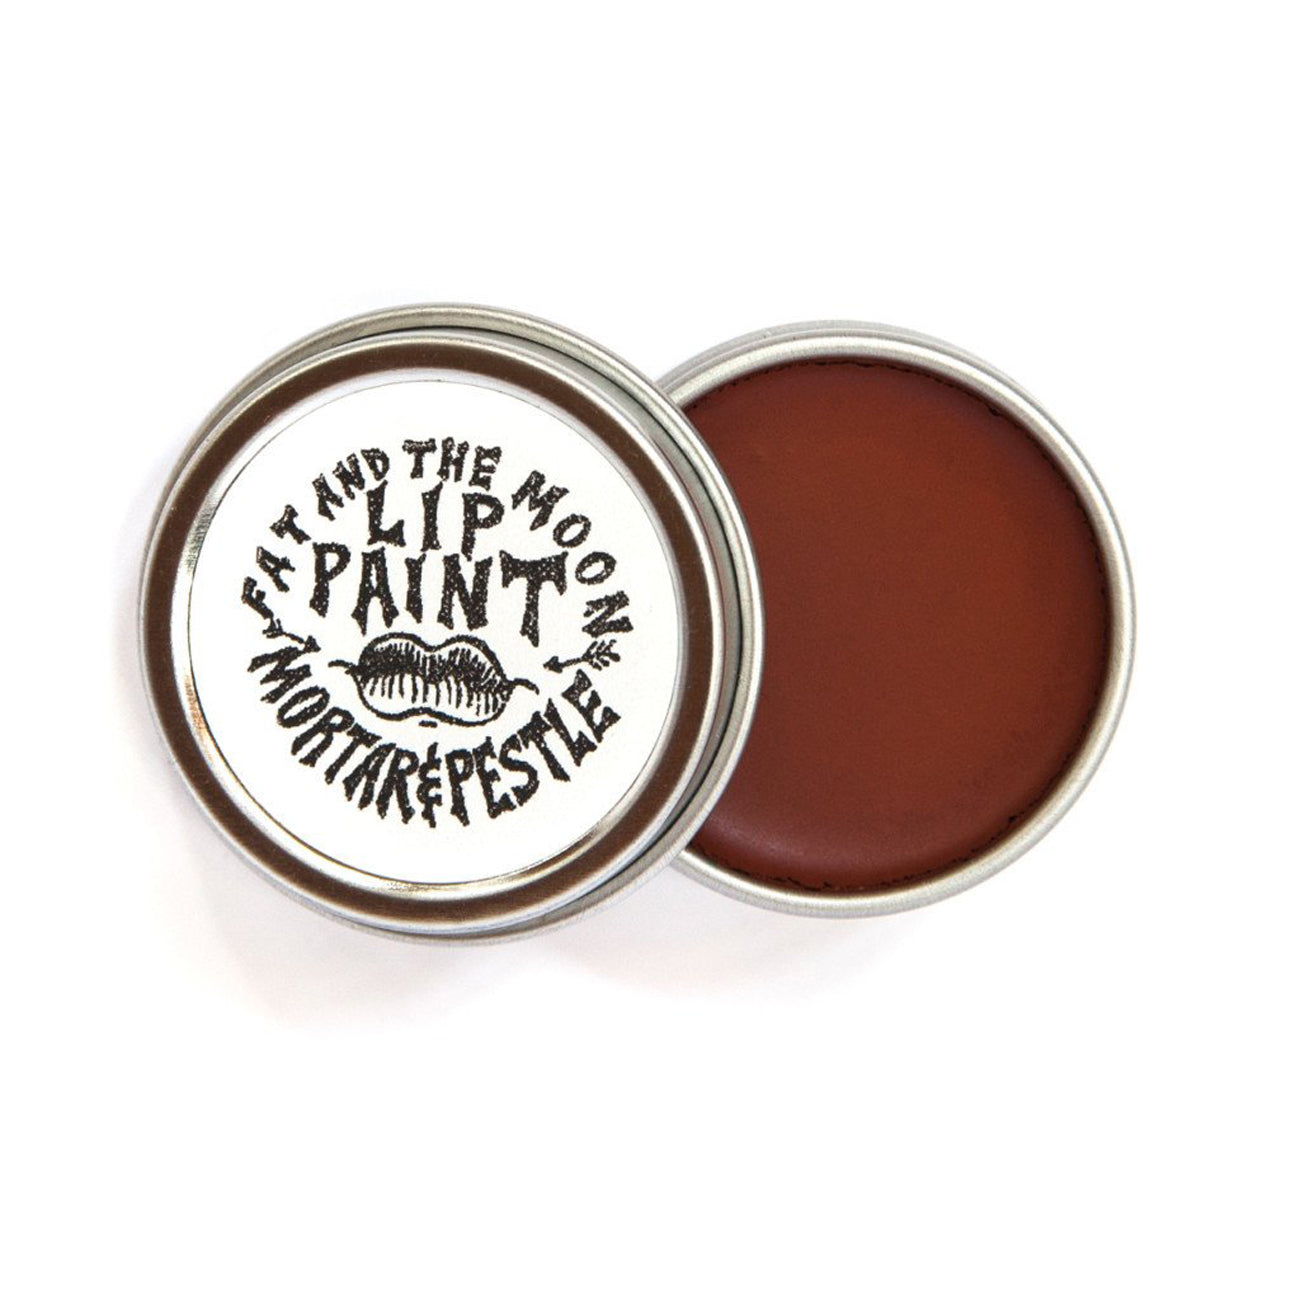 Fat and the Moon Mortar & Pestle Lip Paint